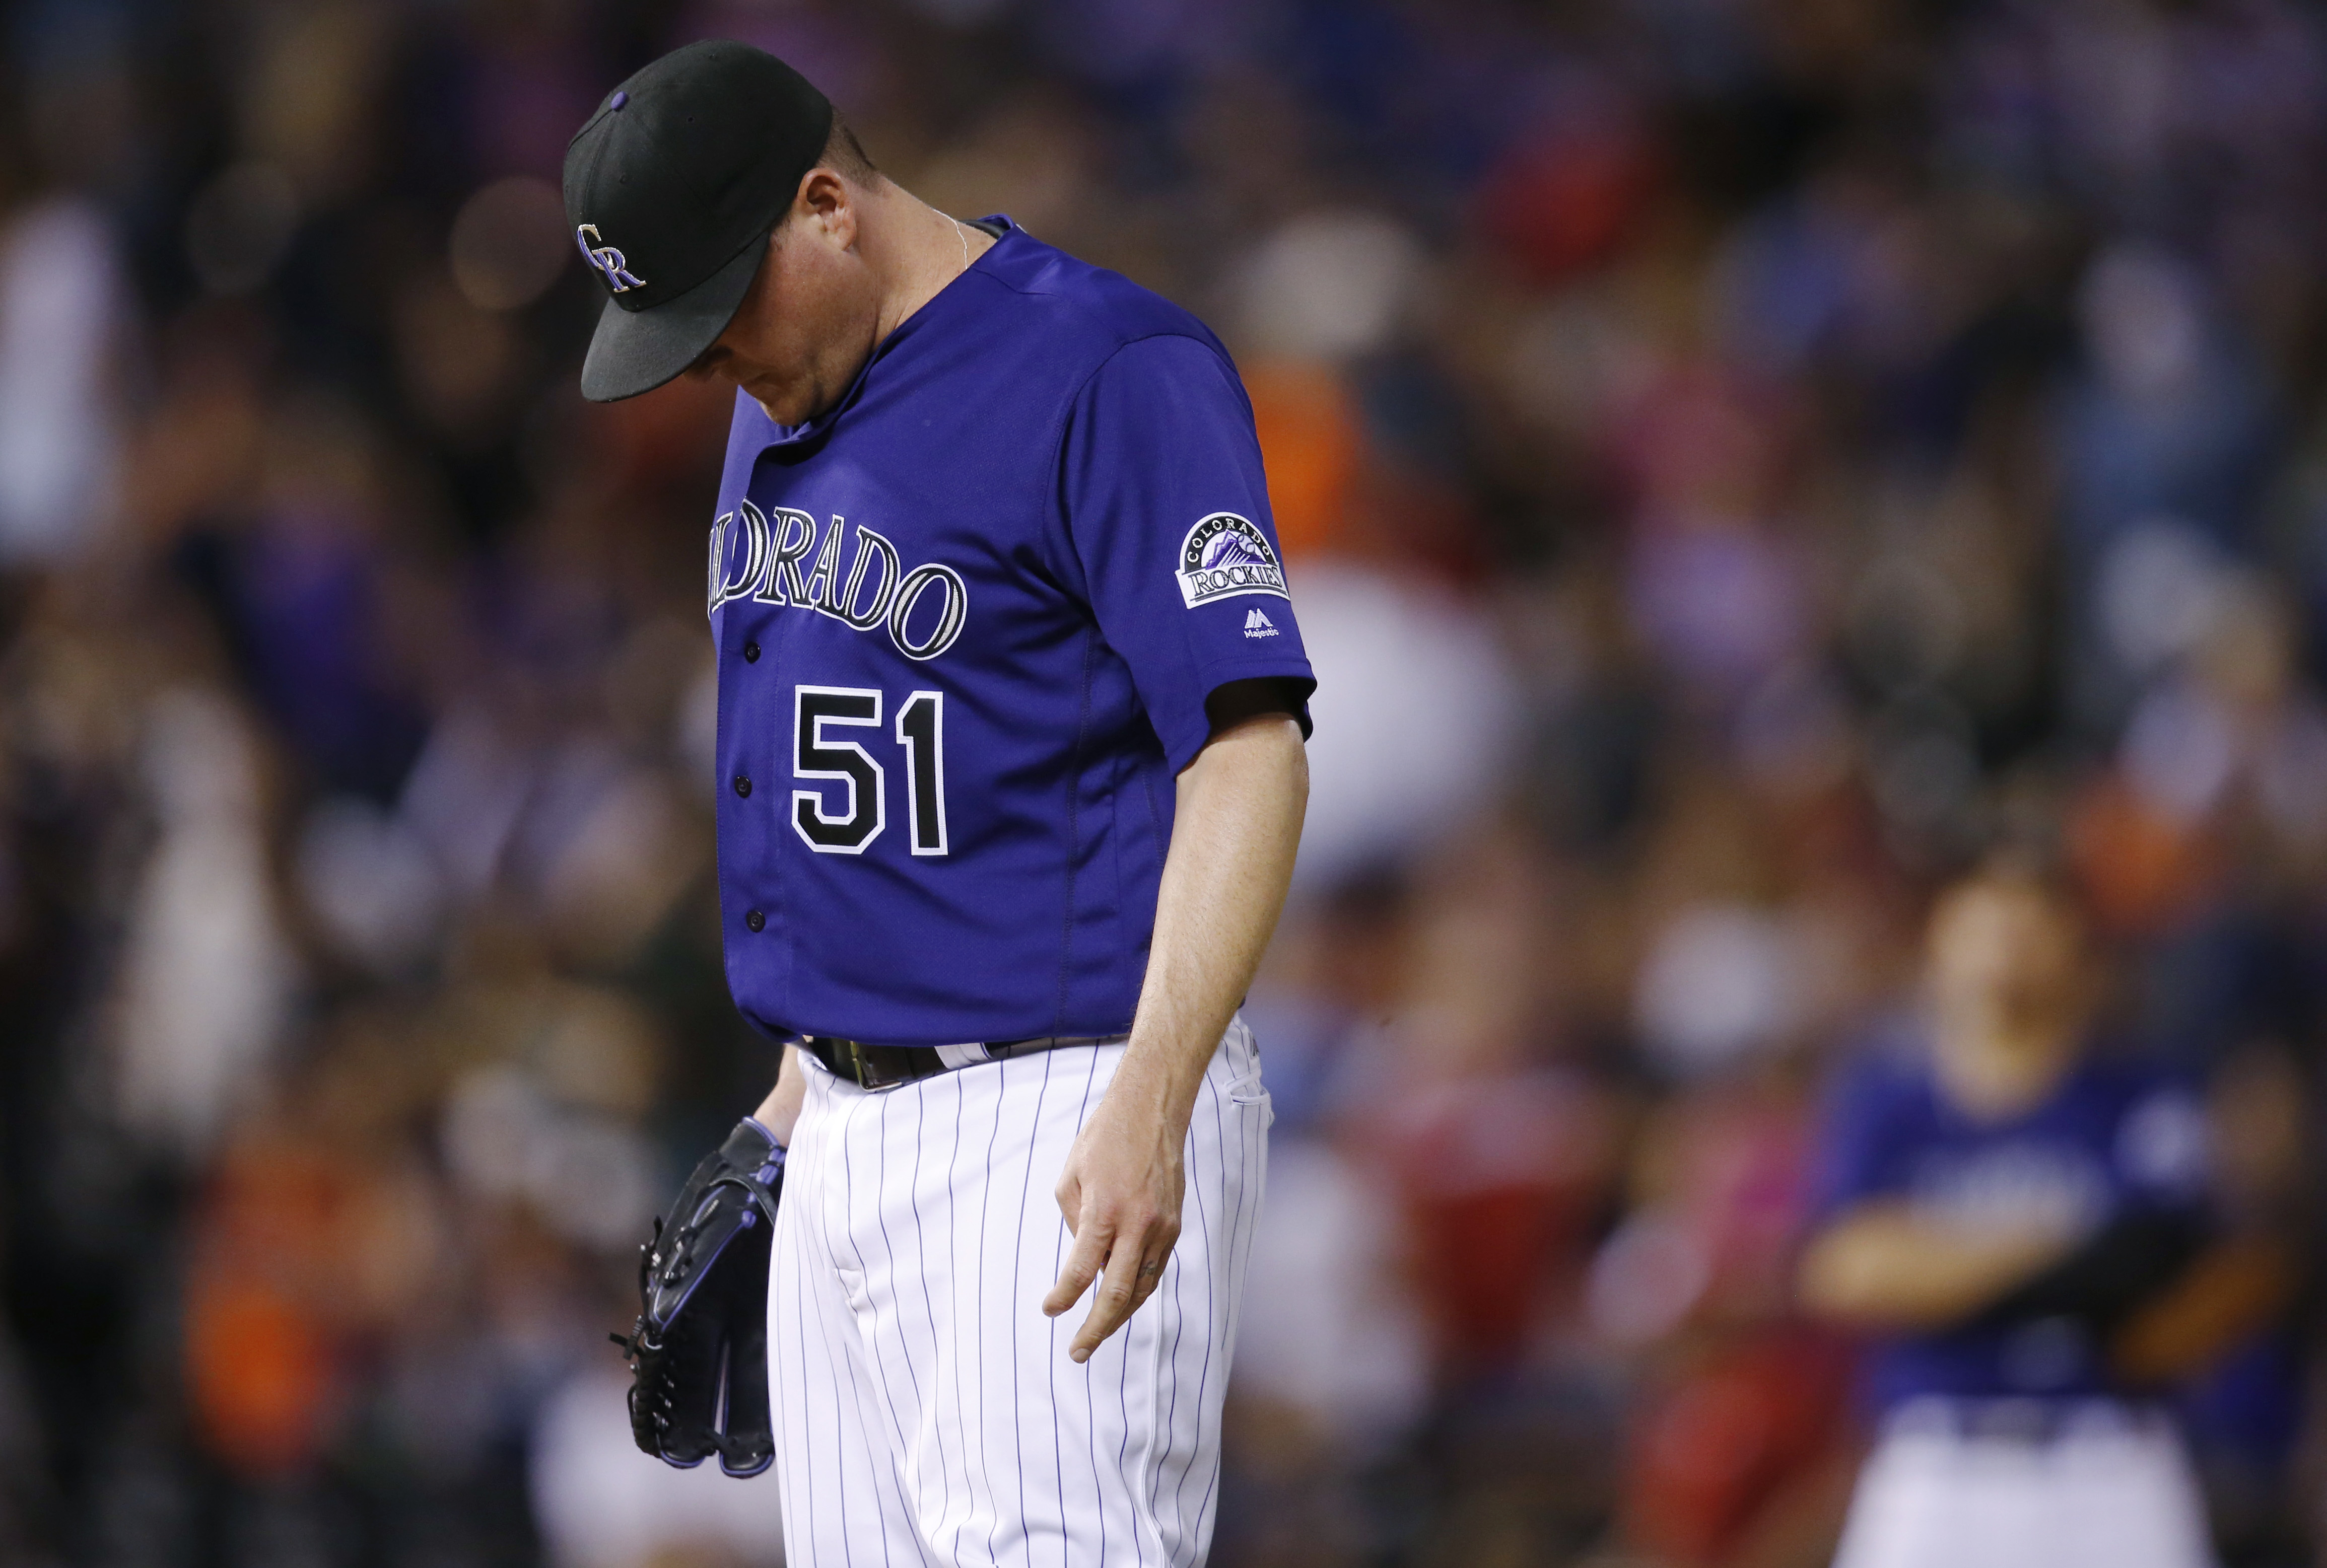 Colorado Rockies relief pitcher Jake McGee reacts after giving up a three-run home run to San Diego Padres' Wil Myers during the ninth inning of a baseball game Friday, June 10, 2016, in Denver. San Diego won 7-5. (AP Photo/David Zalubowski)